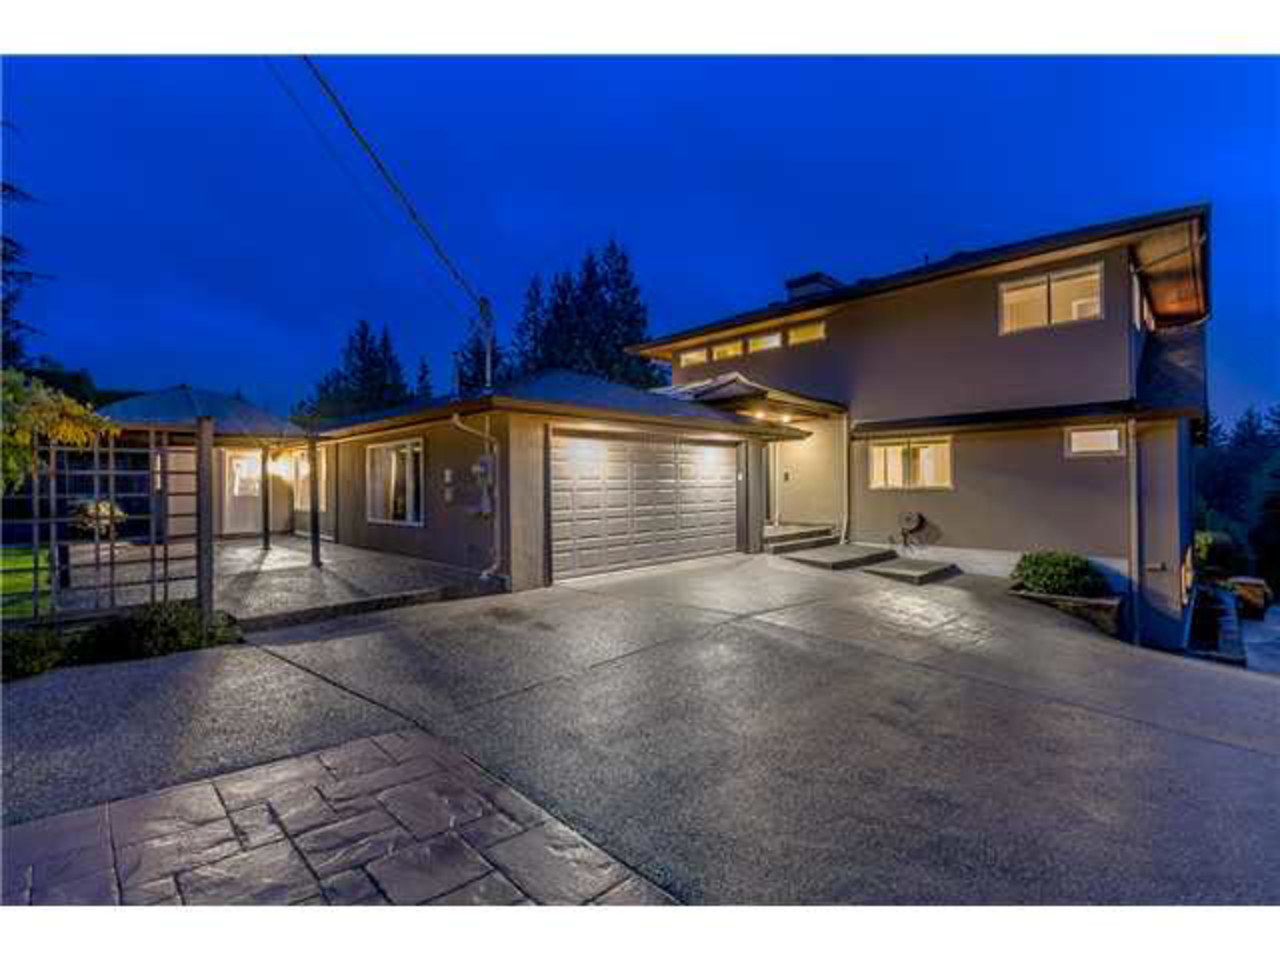 261455414-1 at 661 661 Kenwood, British Properties, West Vancouver